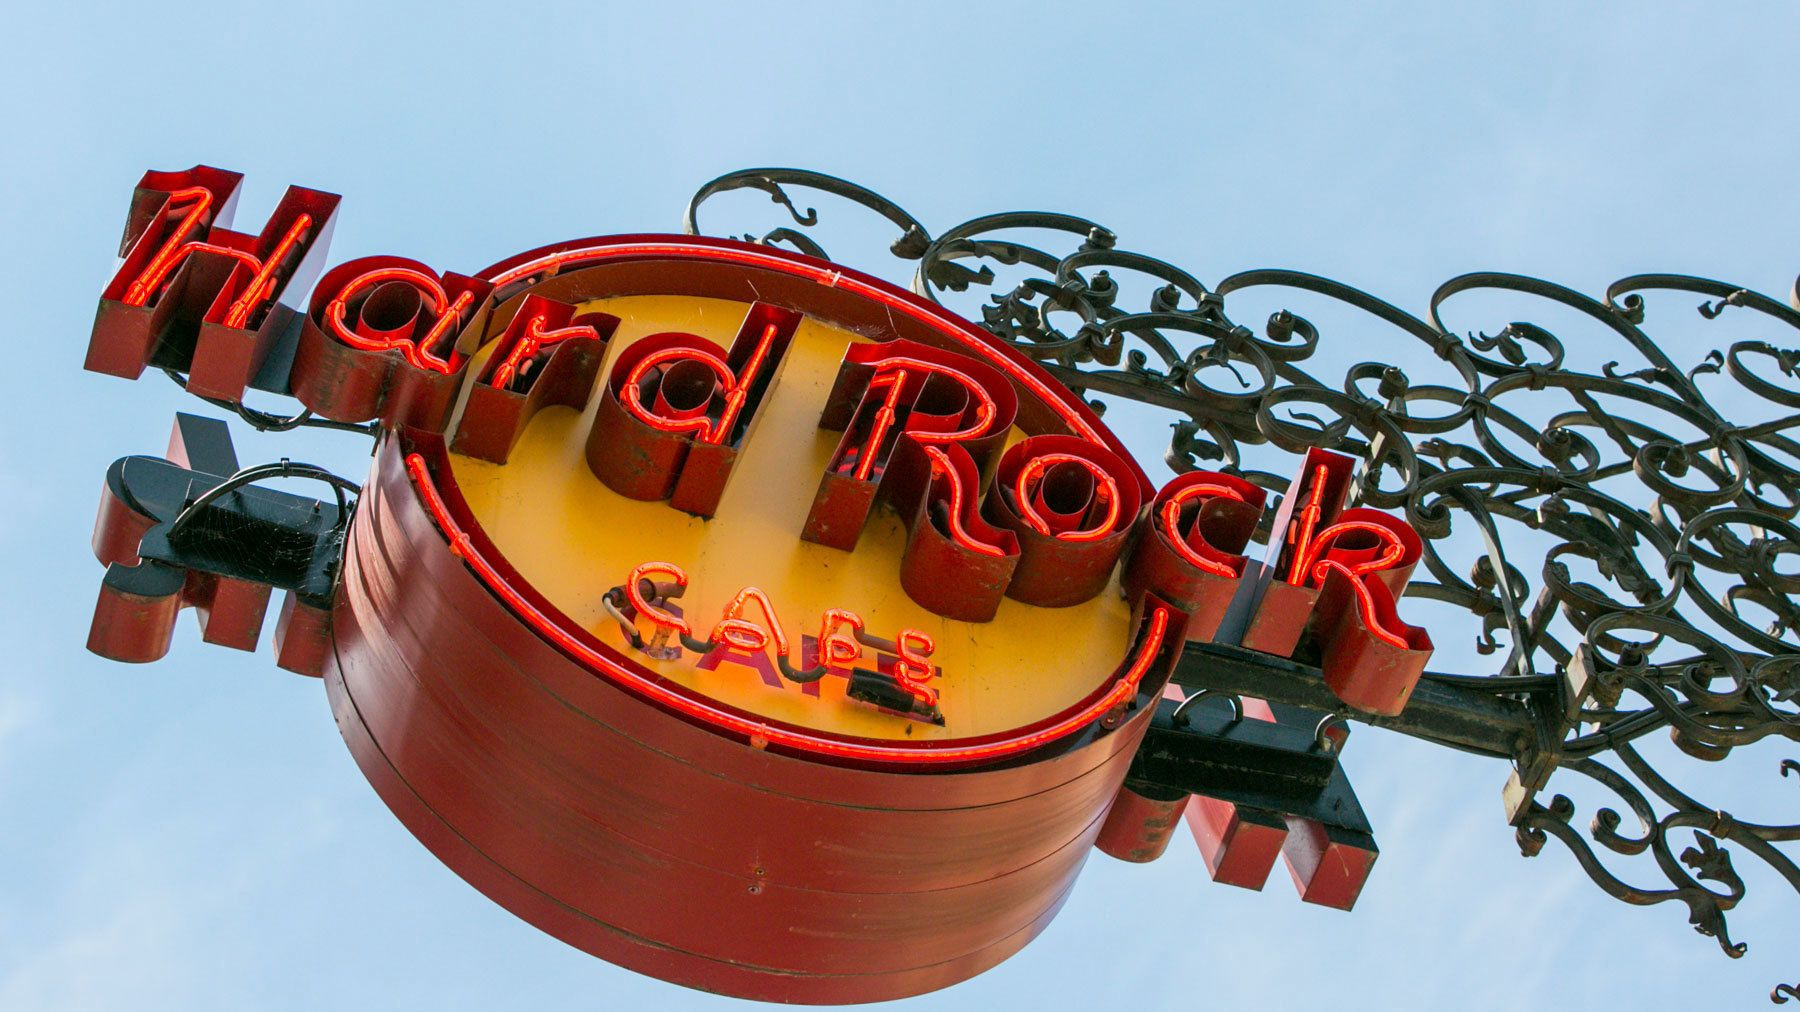 Skip-the-Line Dining at Hard Rock Cafe Munich